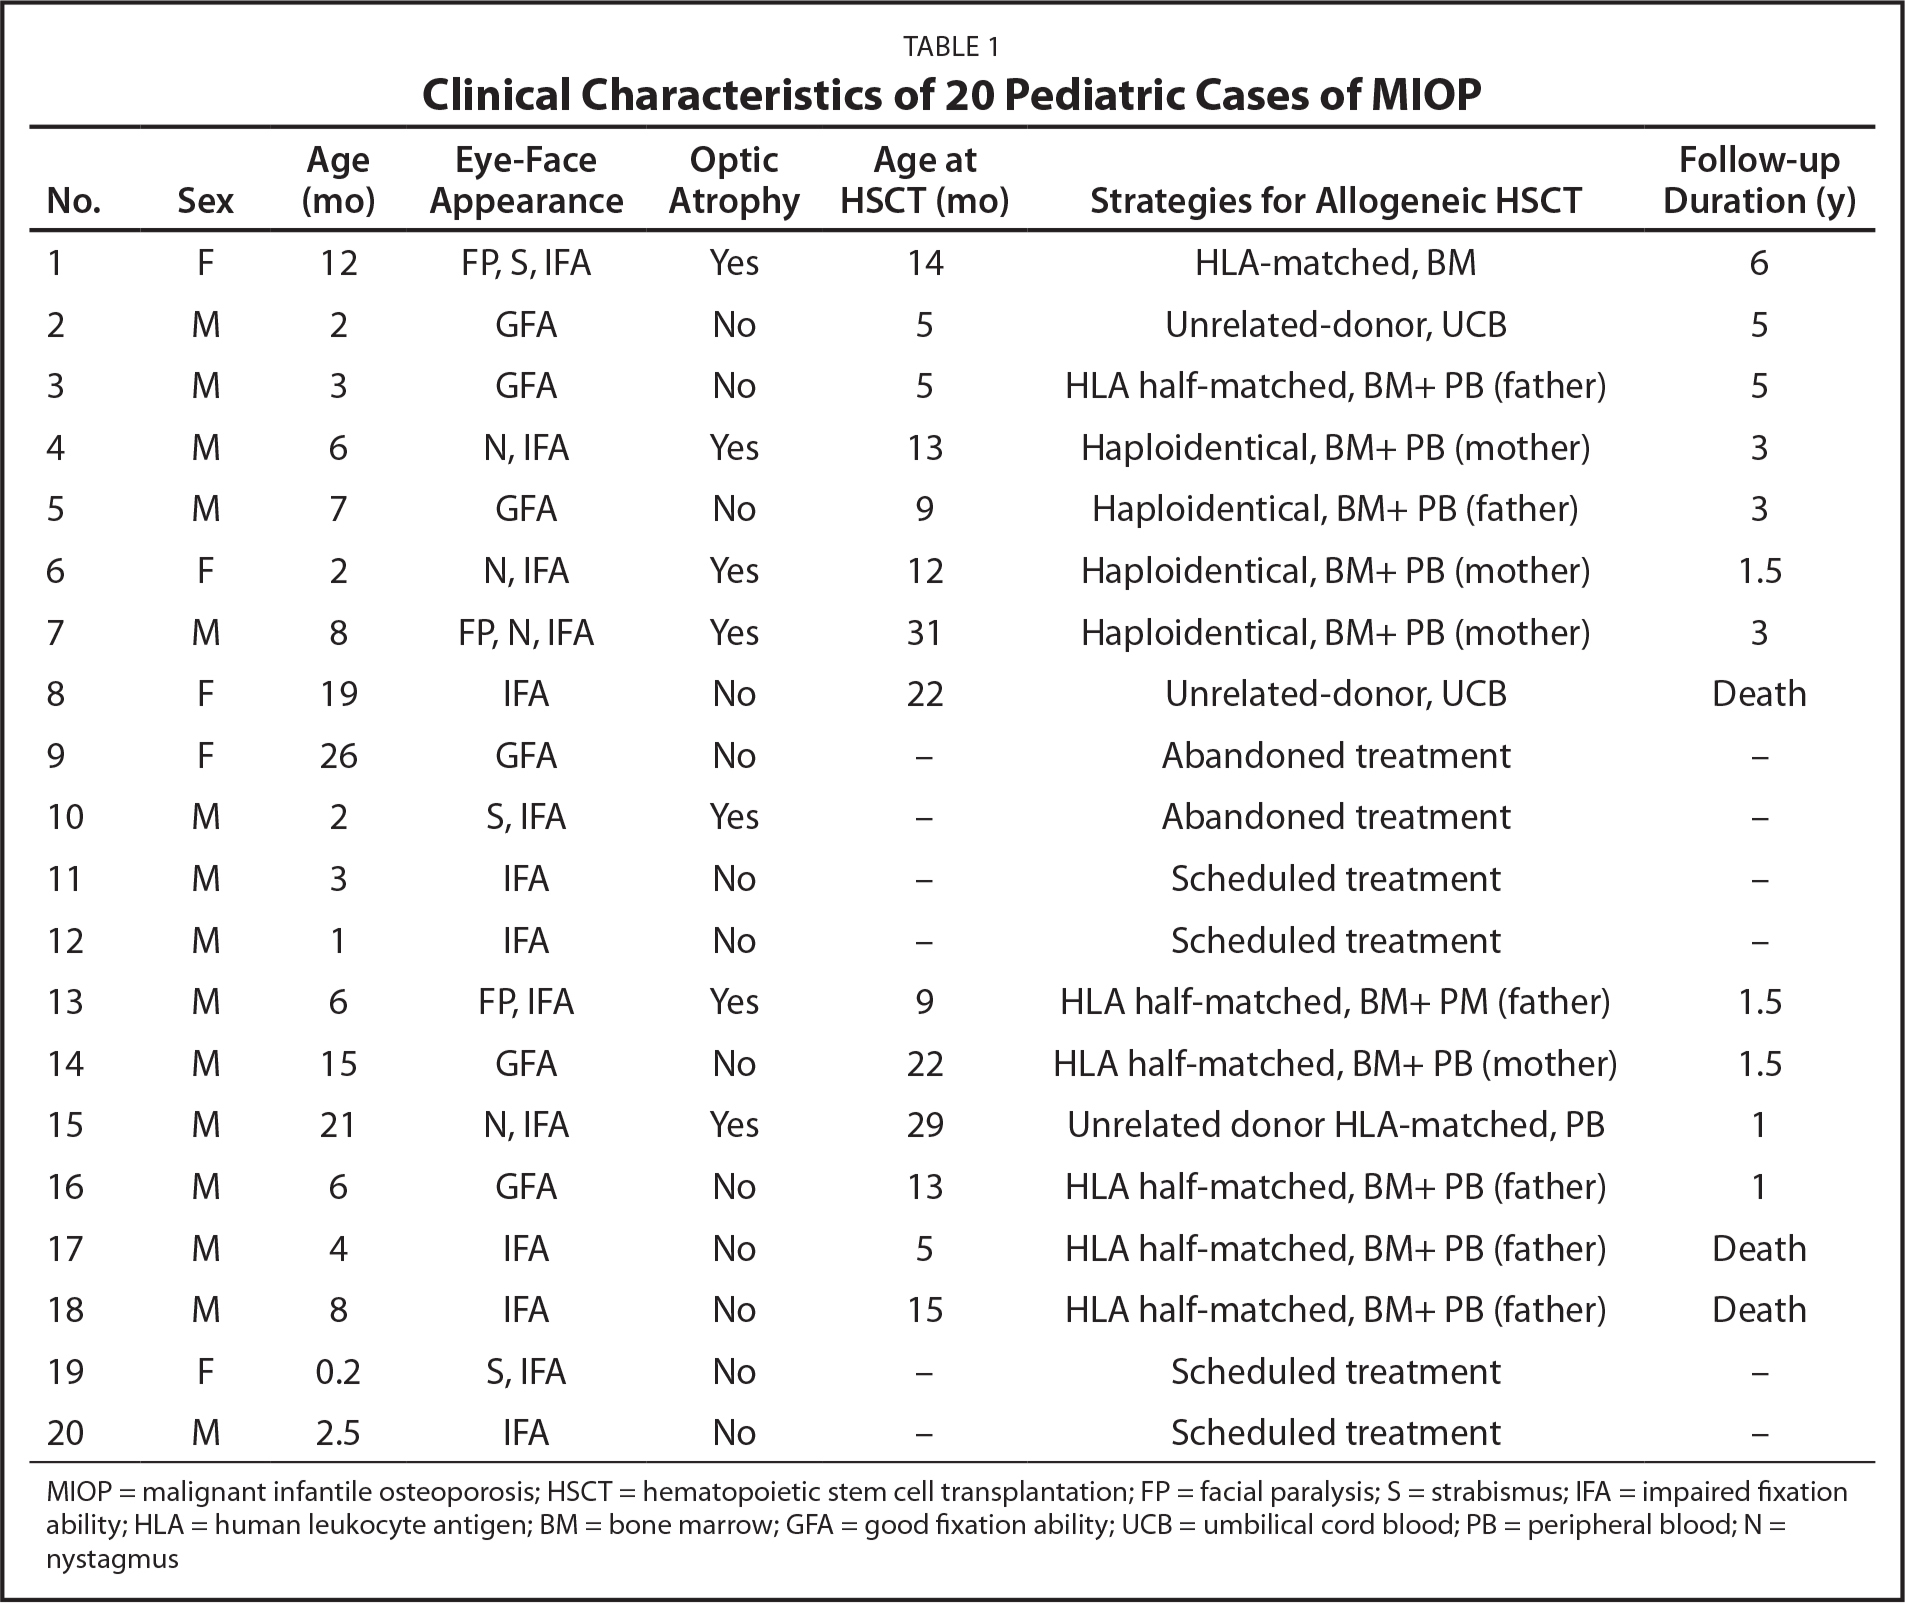 Clinical Characteristics of 20 Pediatric Cases of MIOP